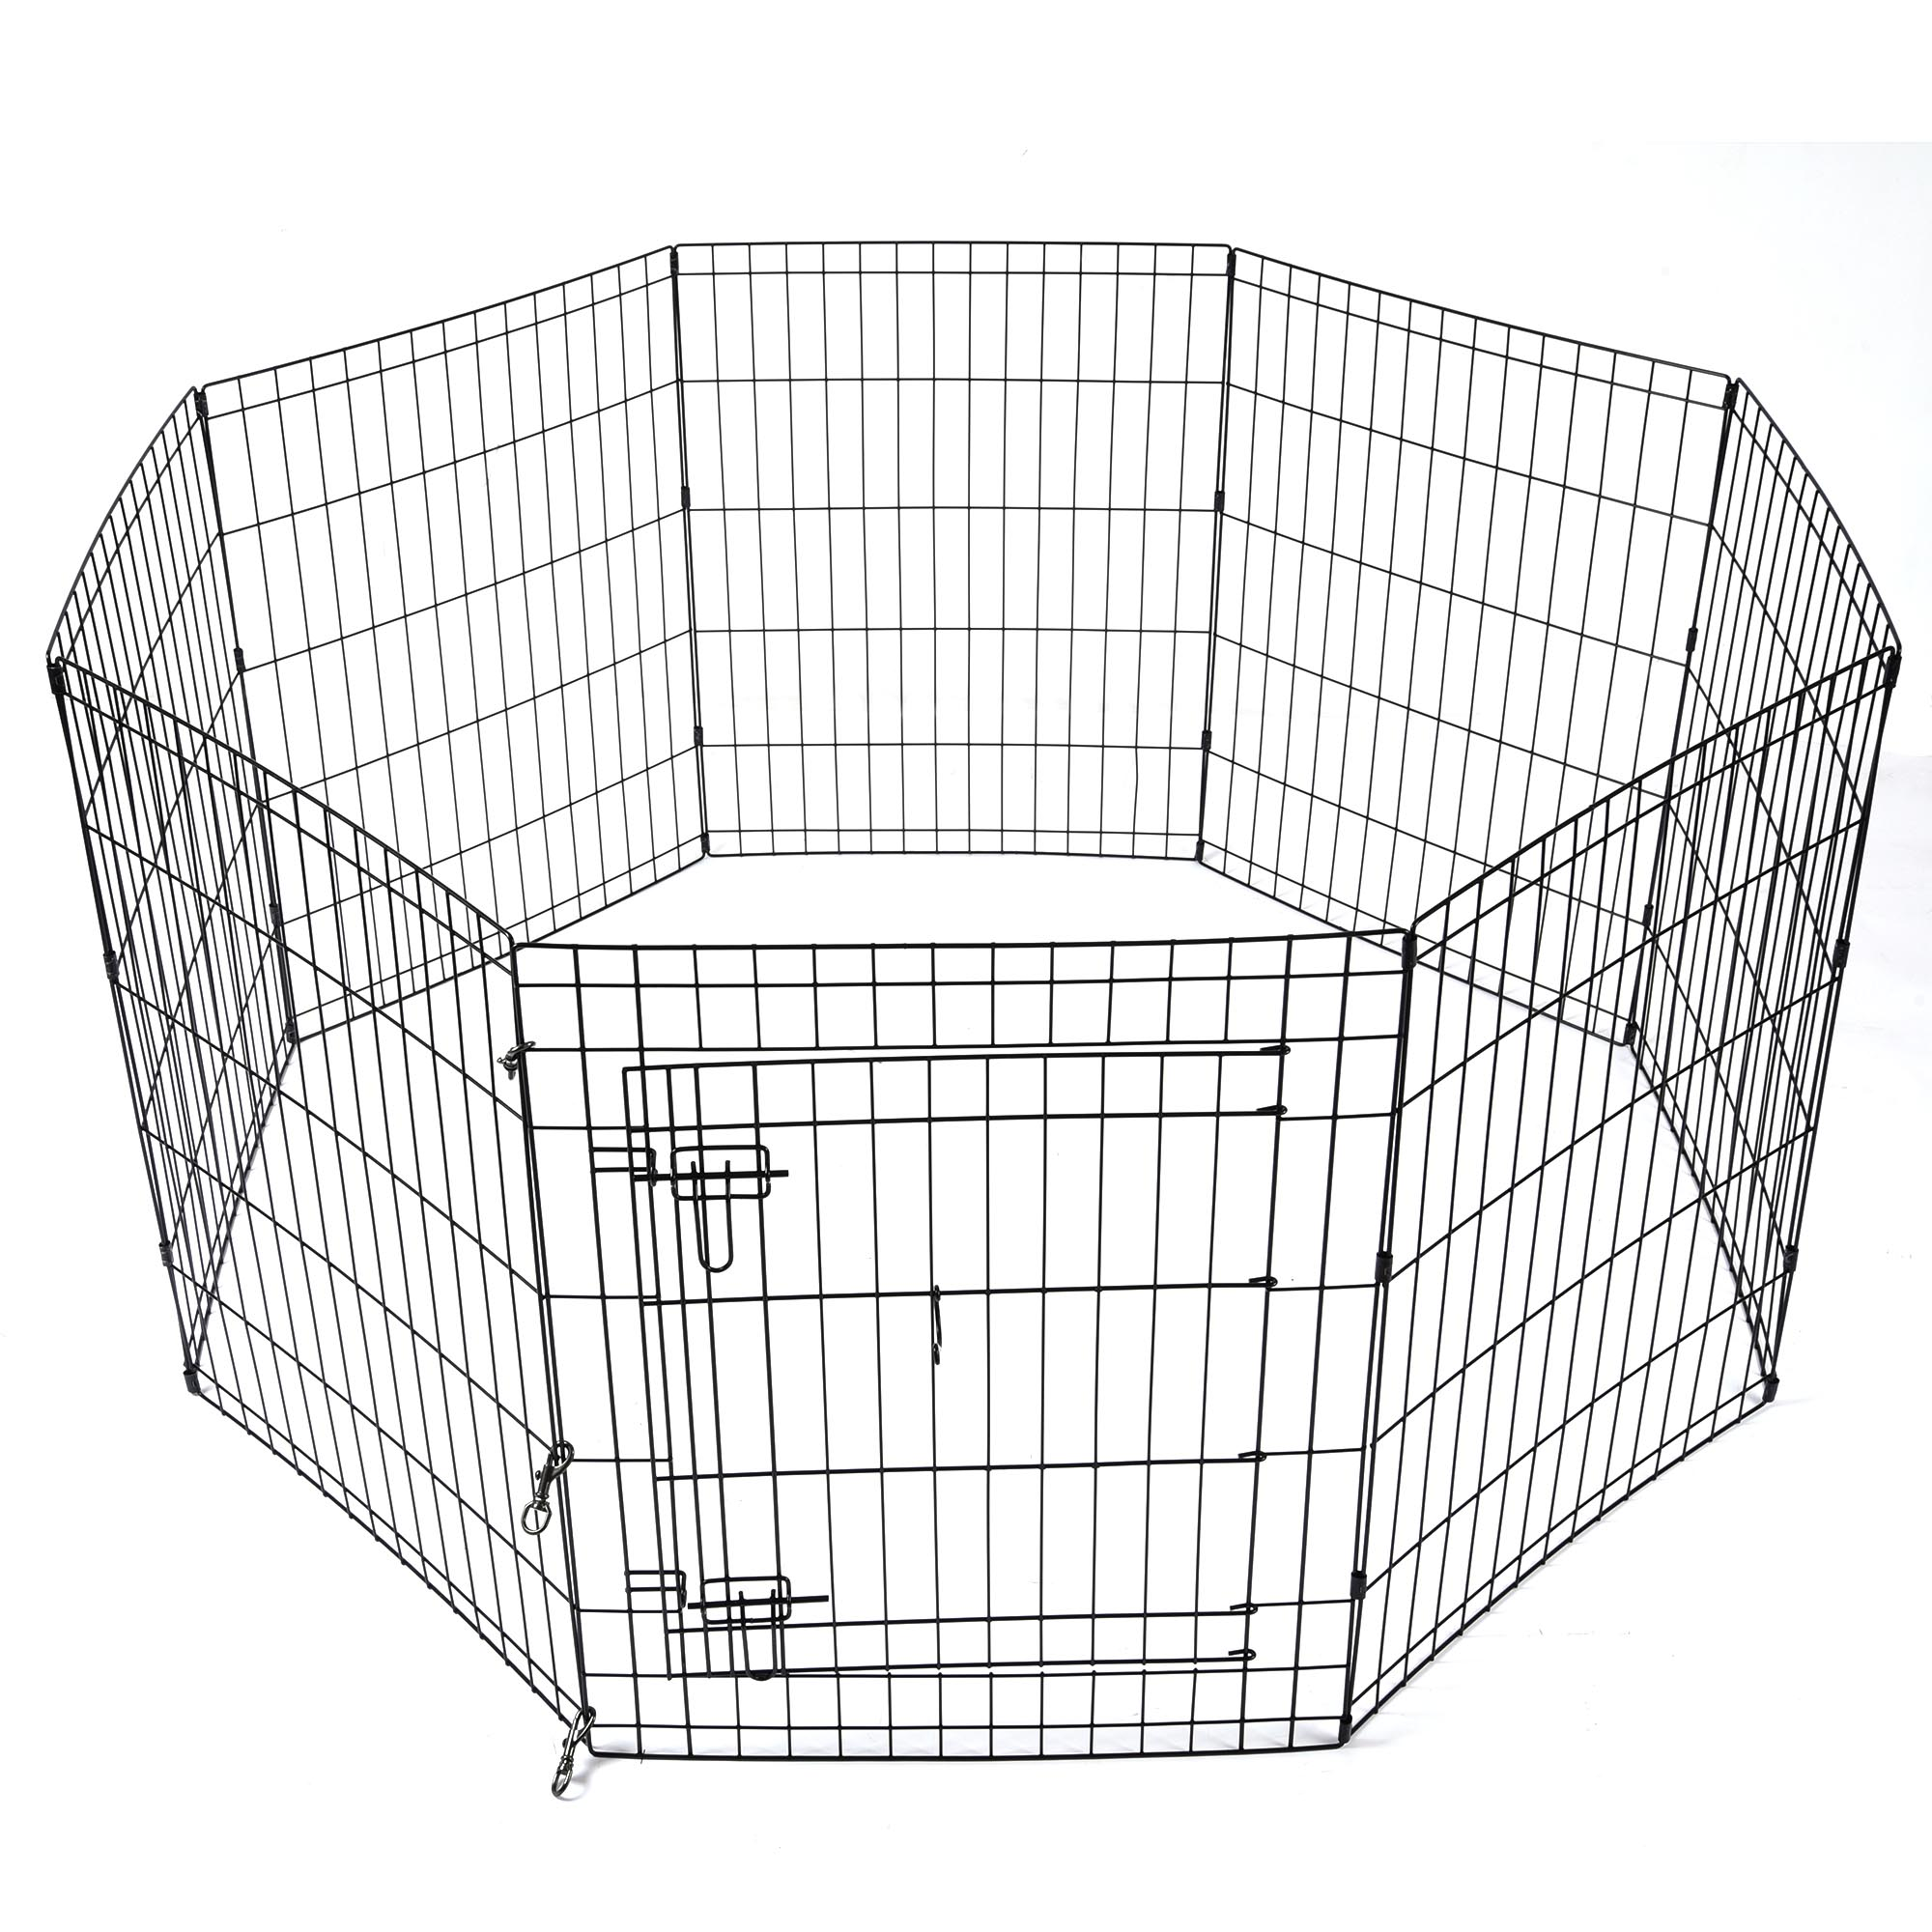 24-30-36-42-48-Dog-Pet-Playpen-Metal-Crate-Fence-Cage-8-Panel-Exercise-Play-Pen thumbnail 12